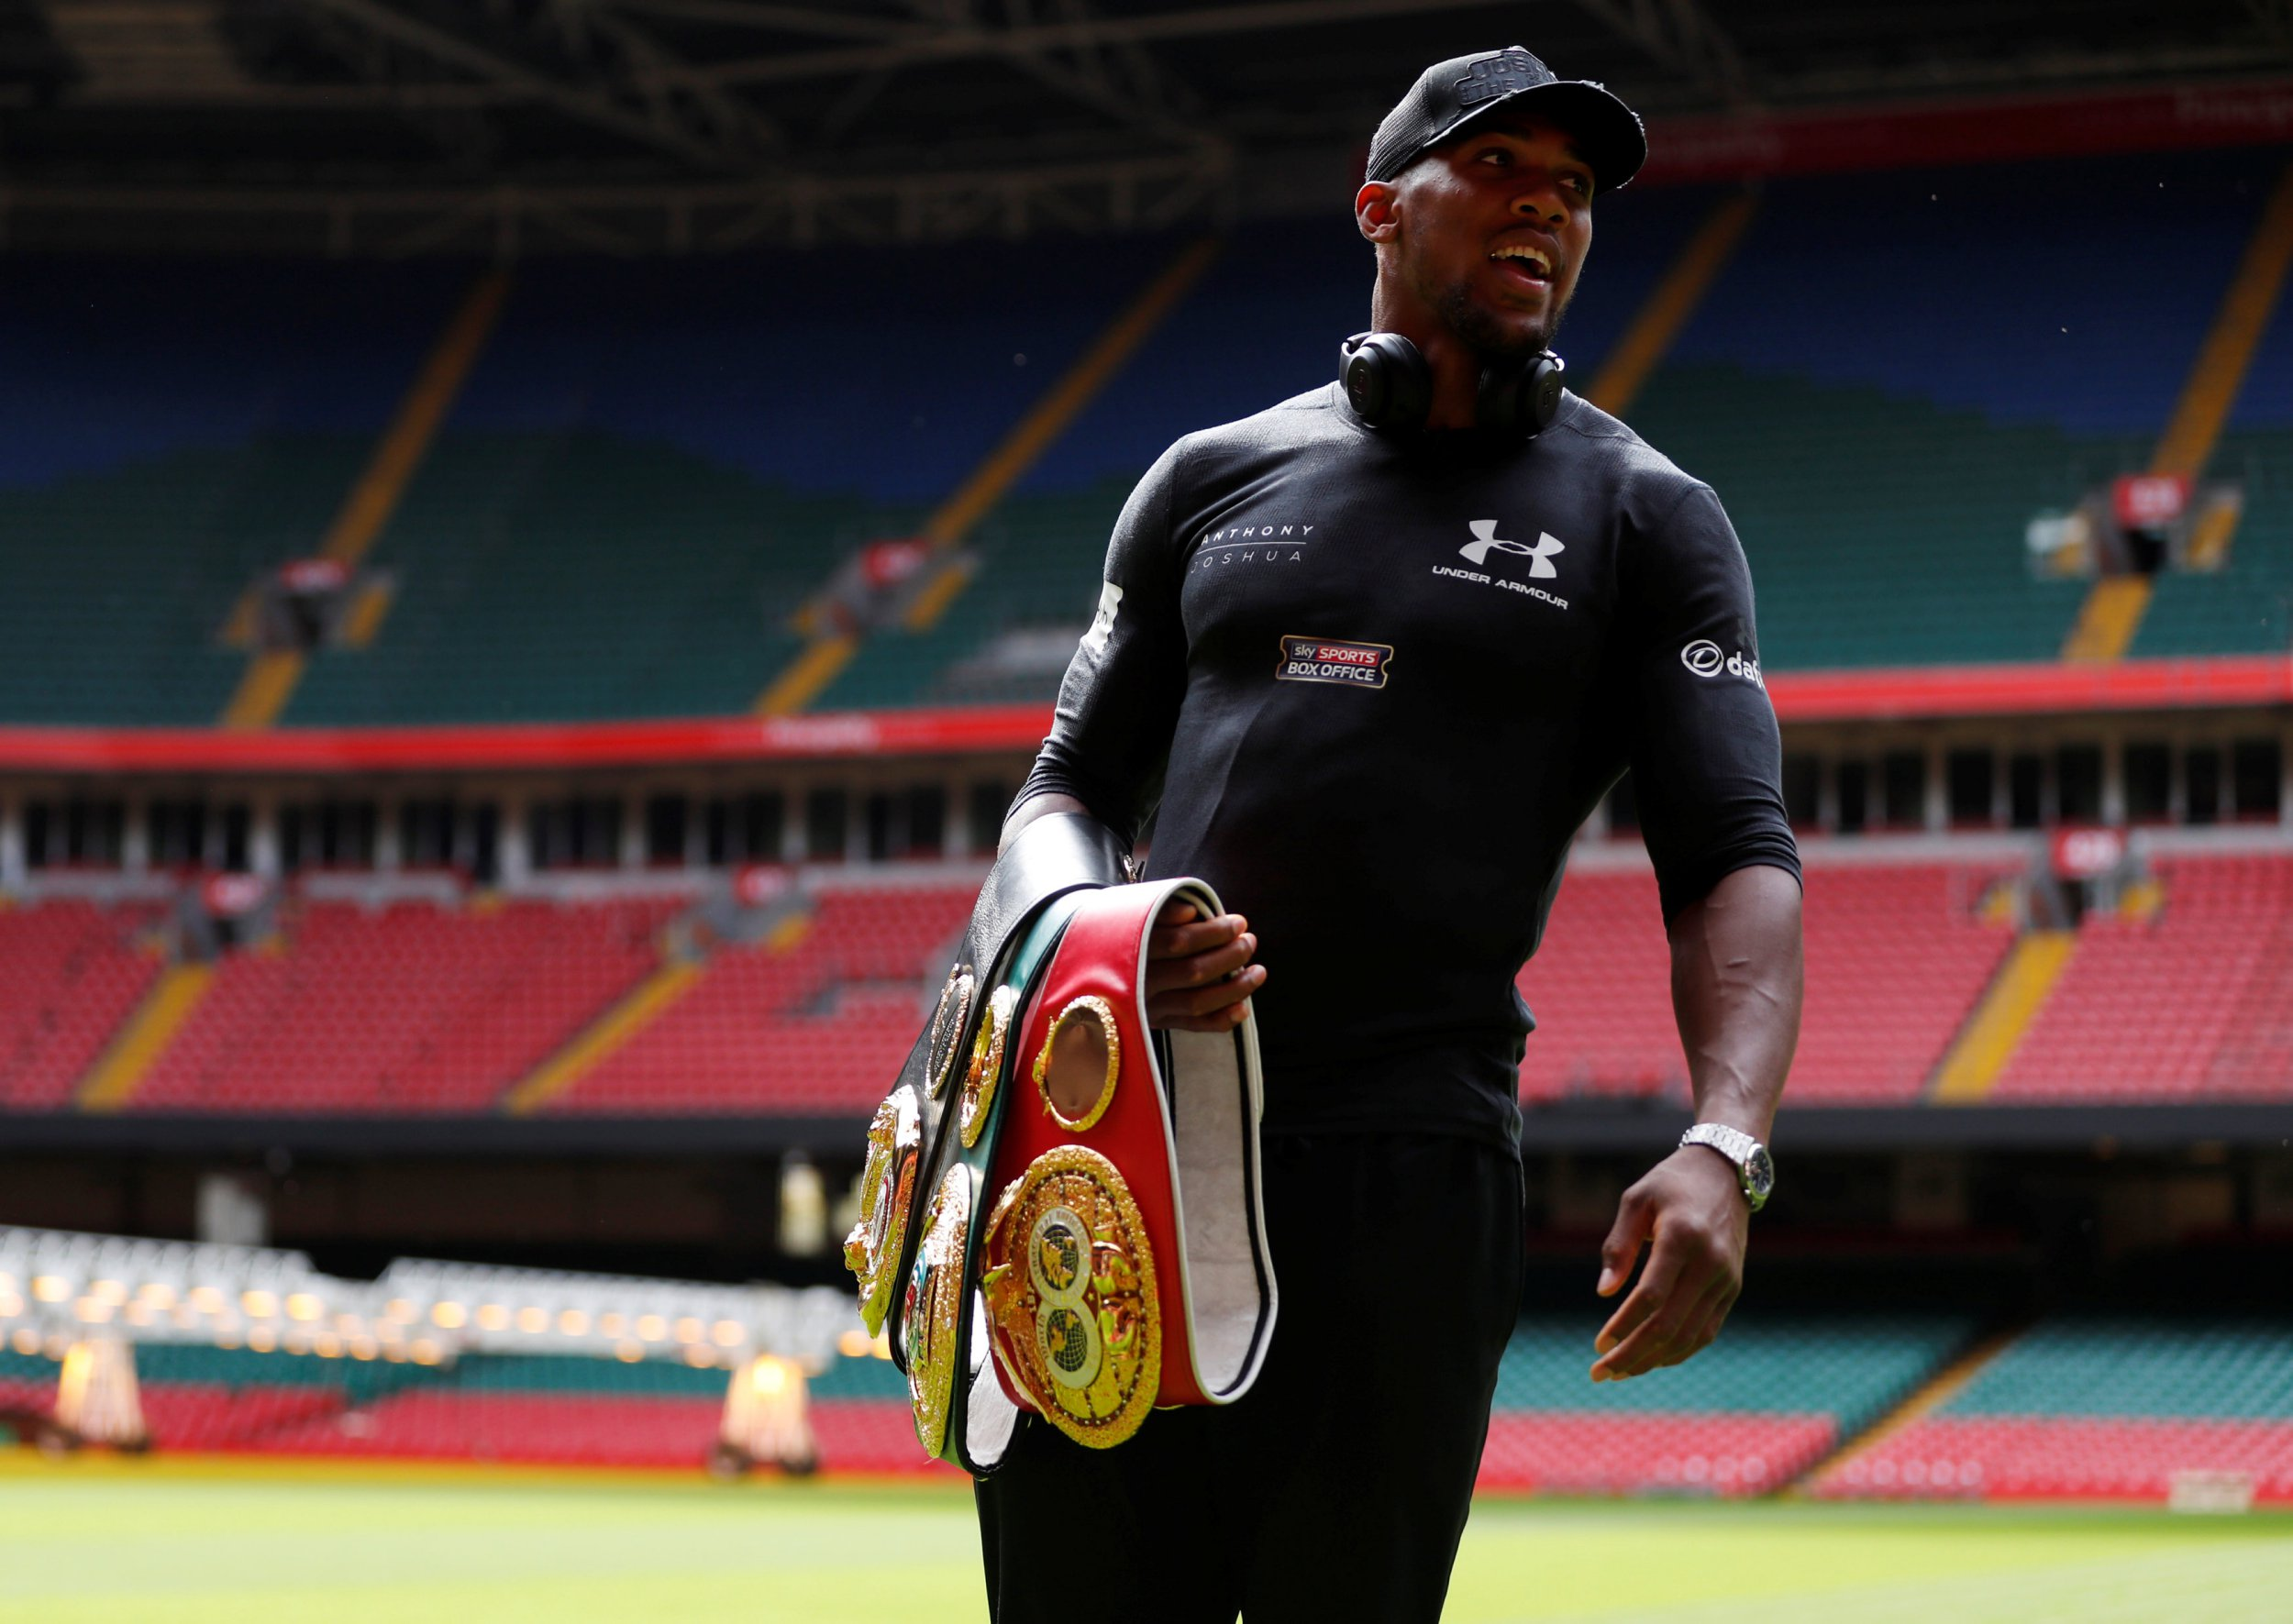 Tony Bellew: Deontay Wilder is kidding himself if he thinks Anthony Joshua fight will happen in America